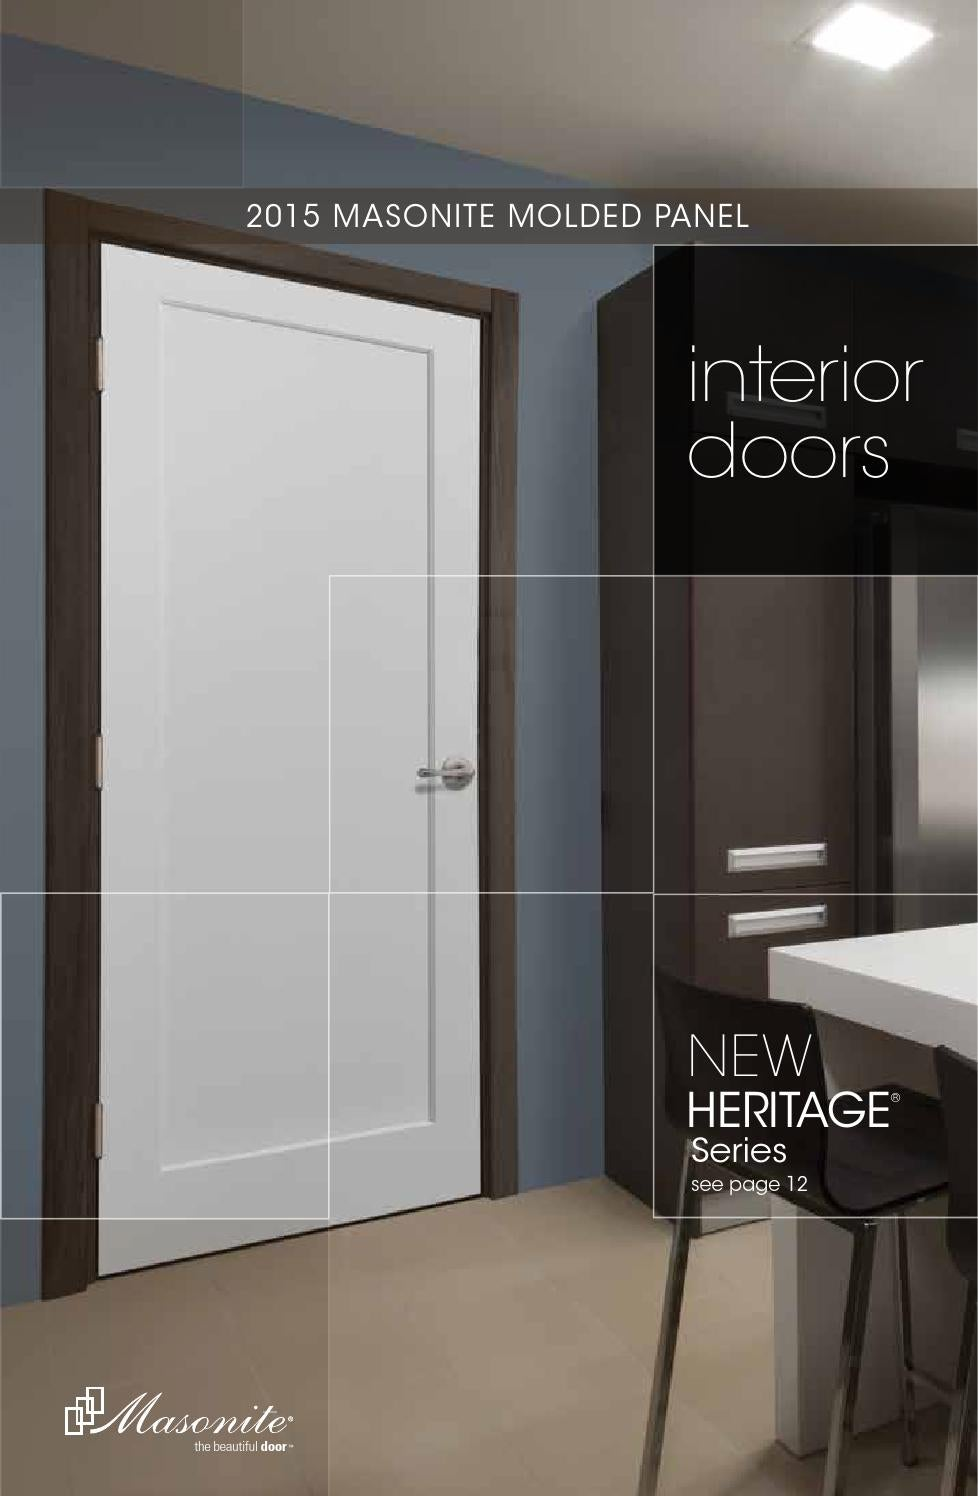 & 2015 Masonite Interior Door Catalog by Meek Lumber Company - issuu Pezcame.Com